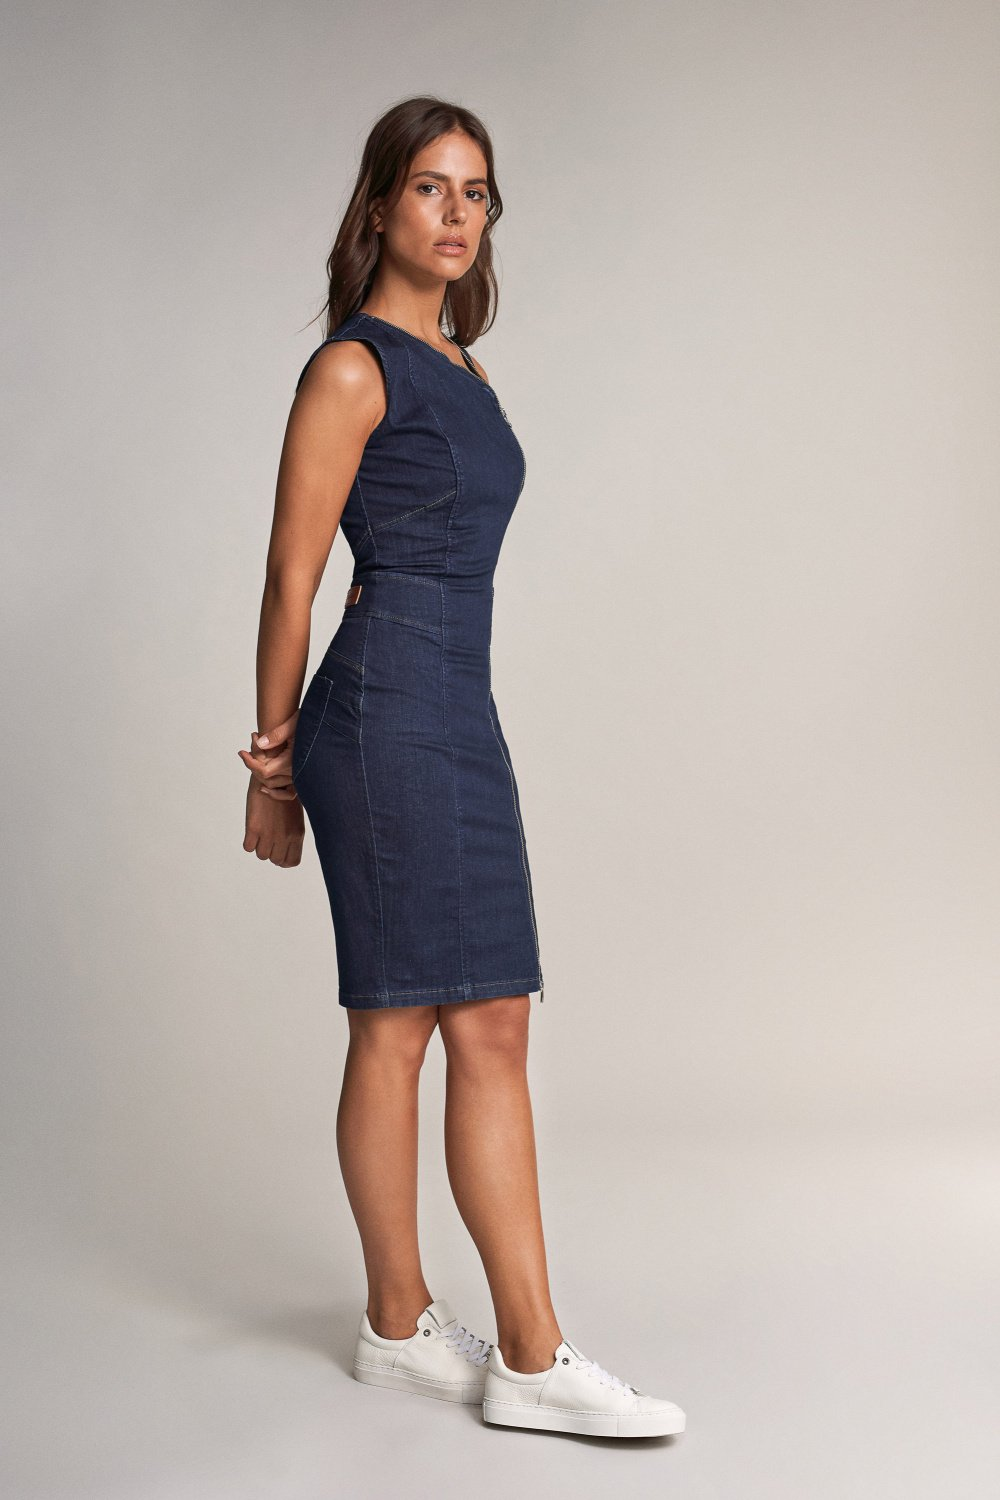 Secret Denim Dress - Salsa